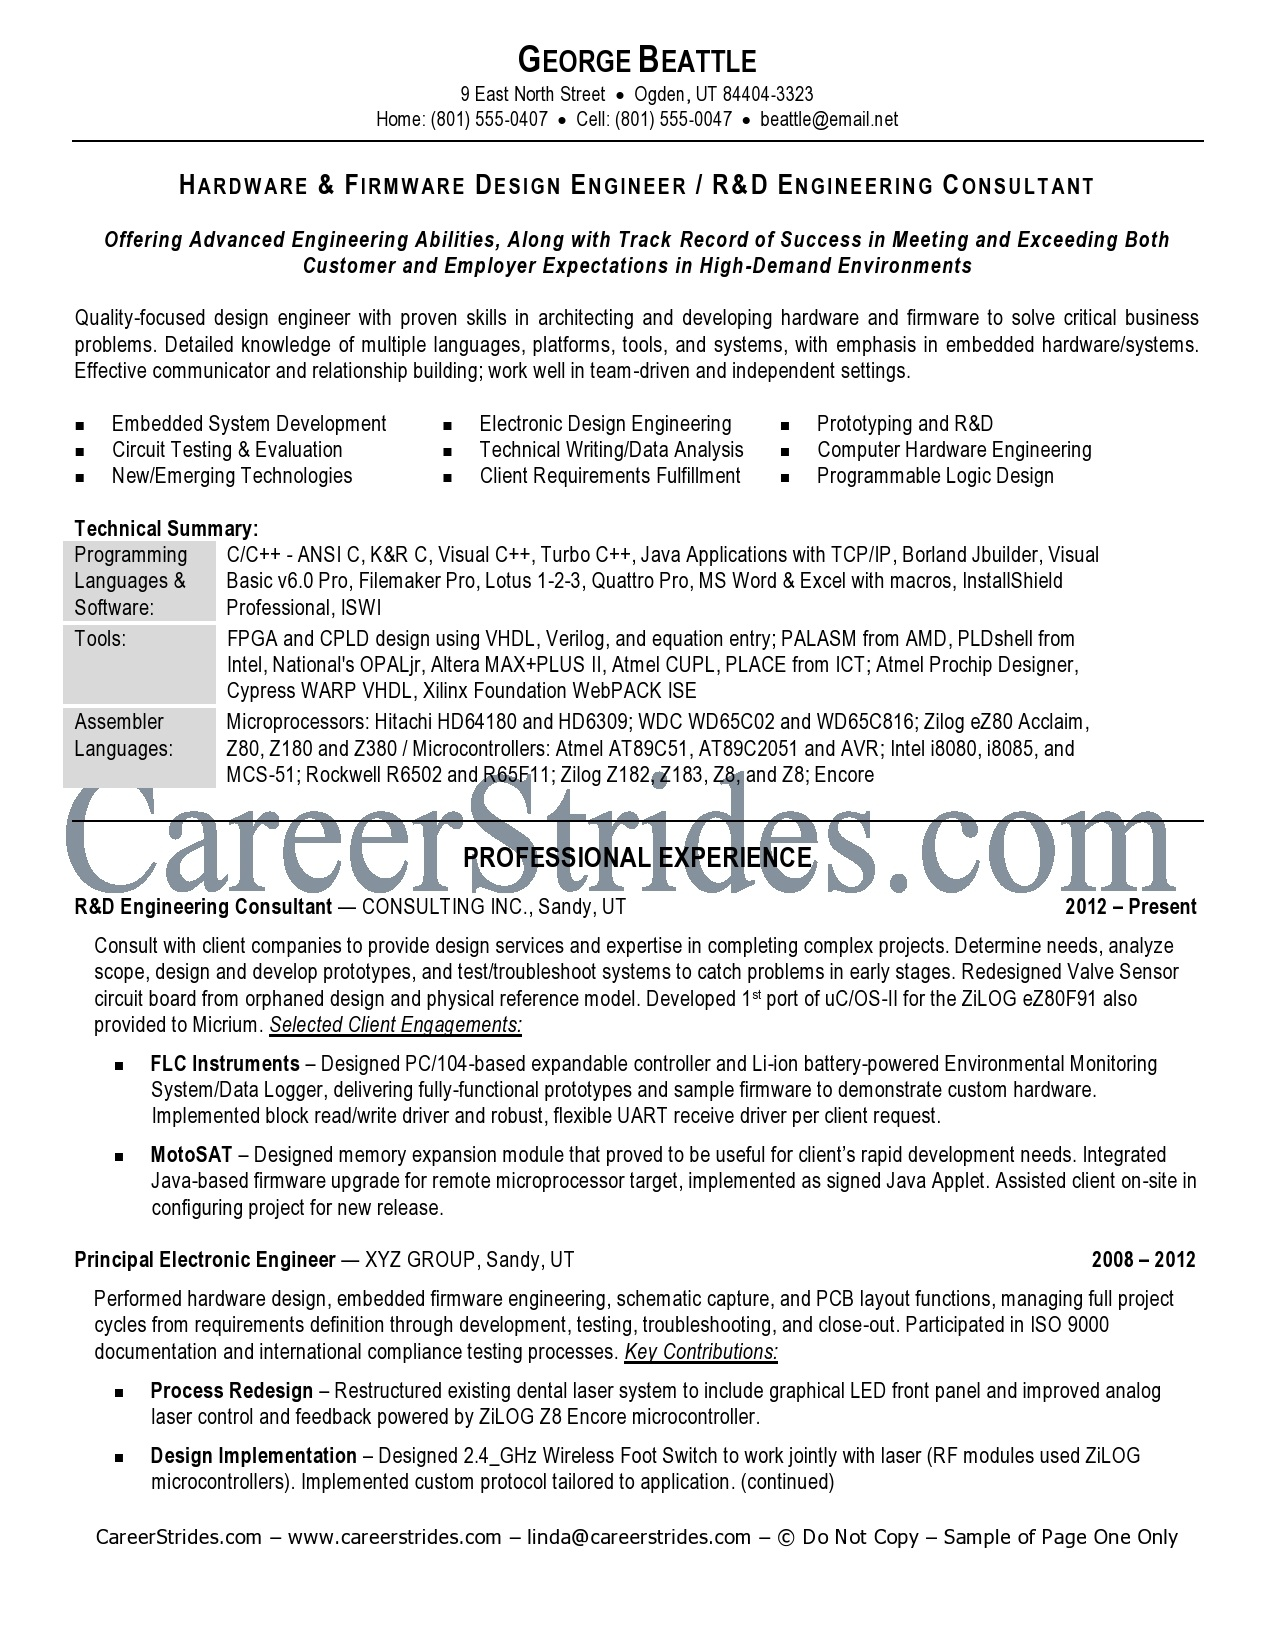 Technical professional resume writing services - Essay writing website ...